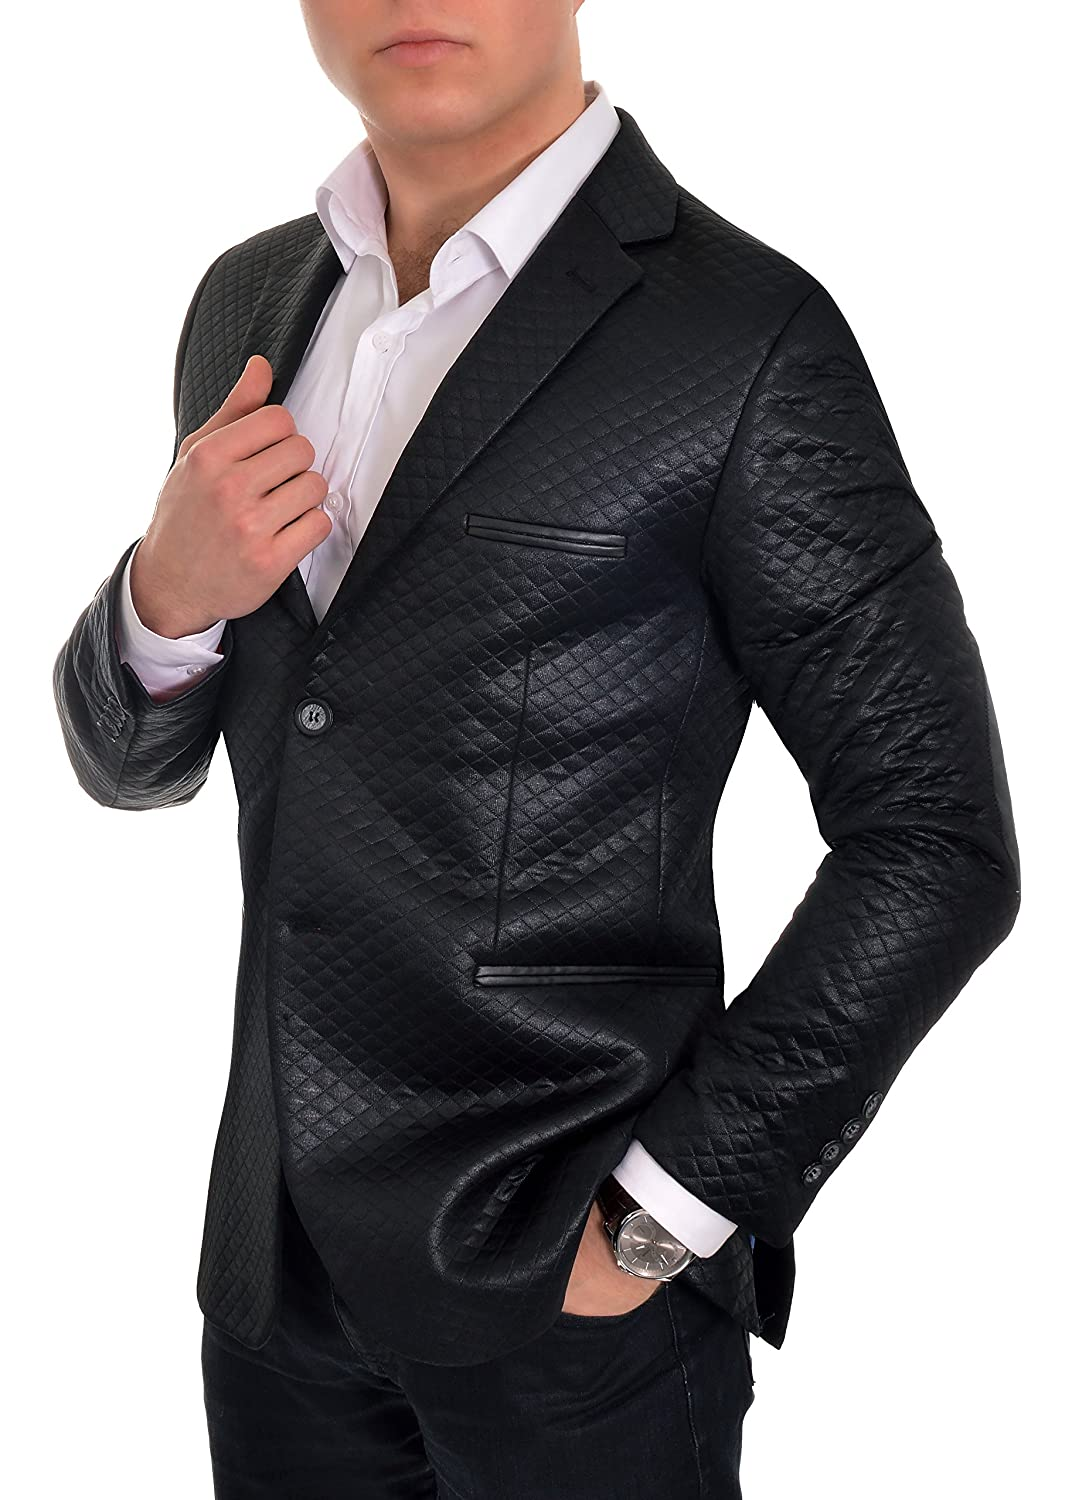 Mens Stylish Quilted Blazer Jacket Casual Formal Plain Black Leather Finishings